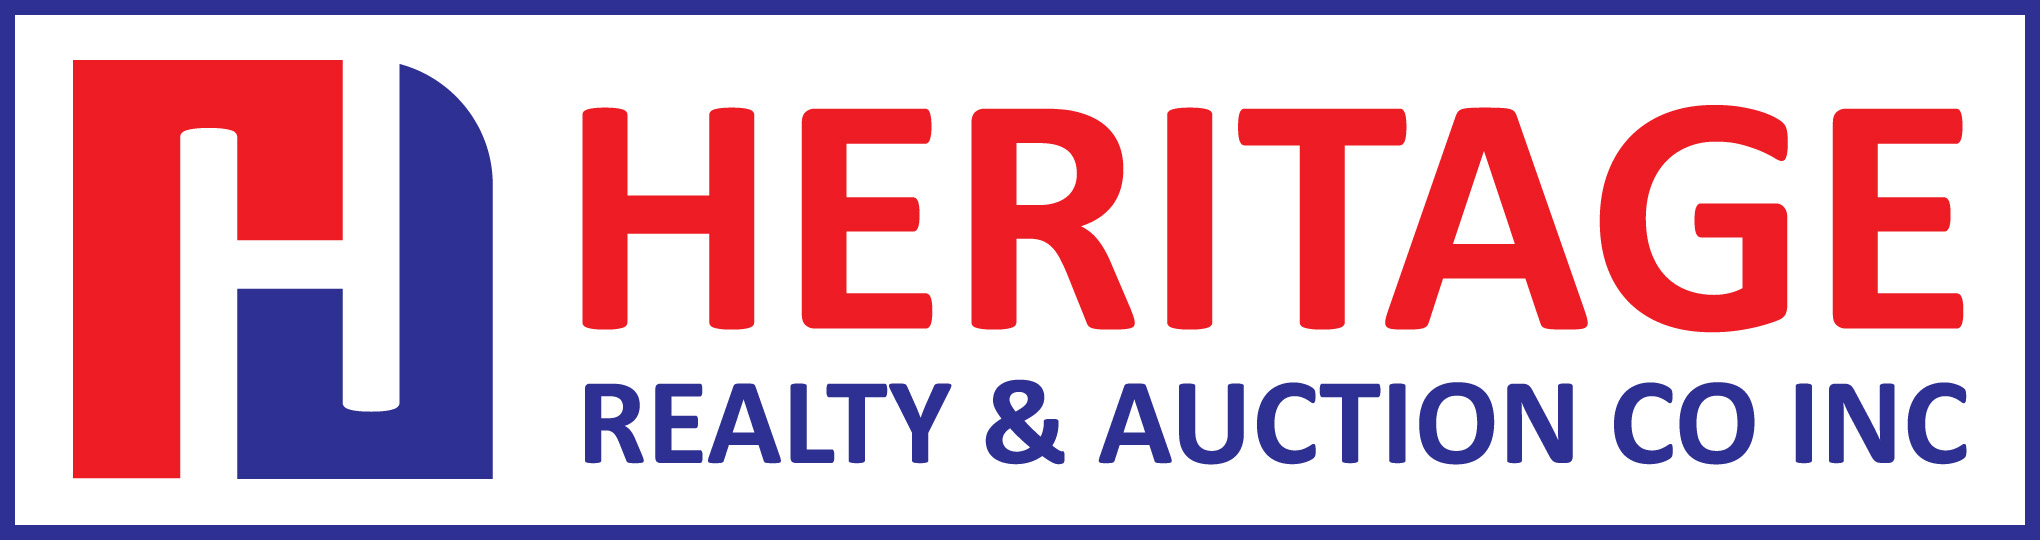 Heritage Realty & Auction Co Inc logo